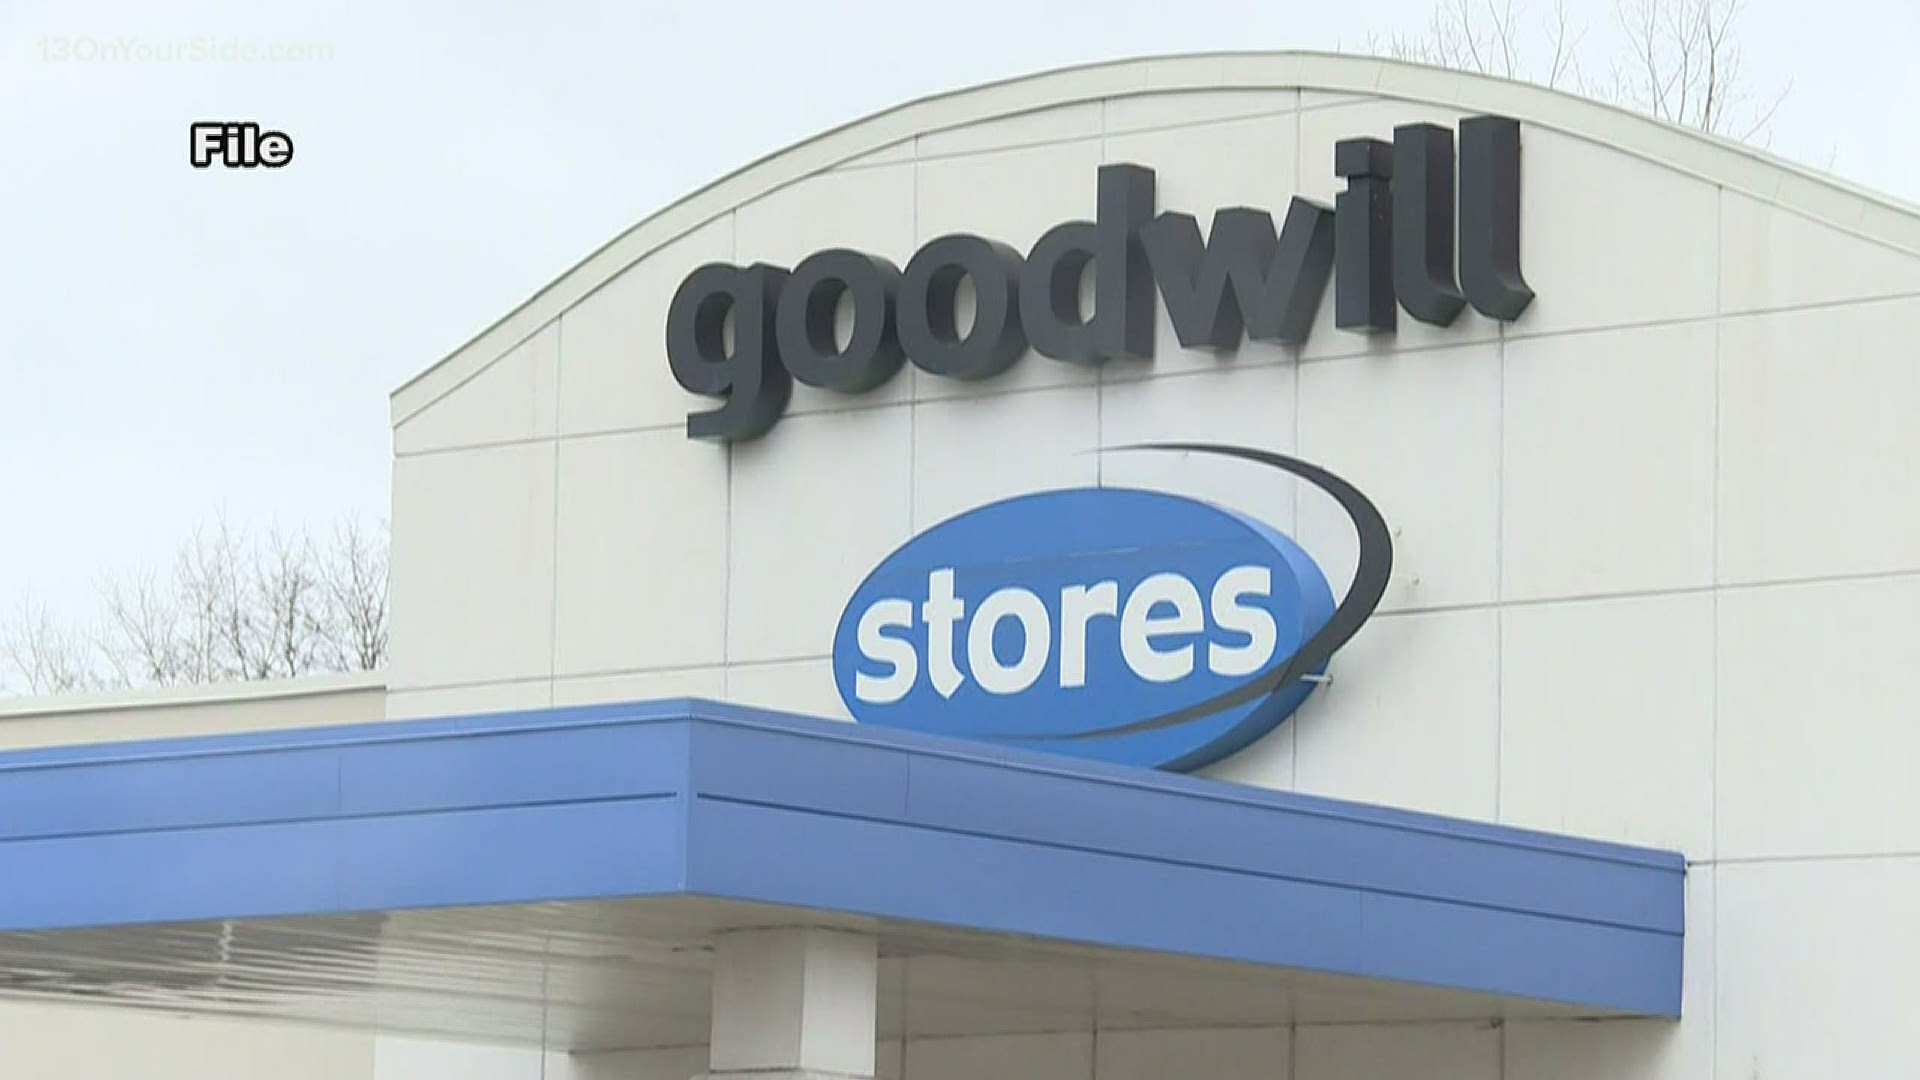 Goodwill Stores Along The Lakeshore Accepting Drop Off Donations Wzzm13 Com,Small Bedroom Colour Combination Small Bedroom Paint Color Ideas For Bedroom Walls